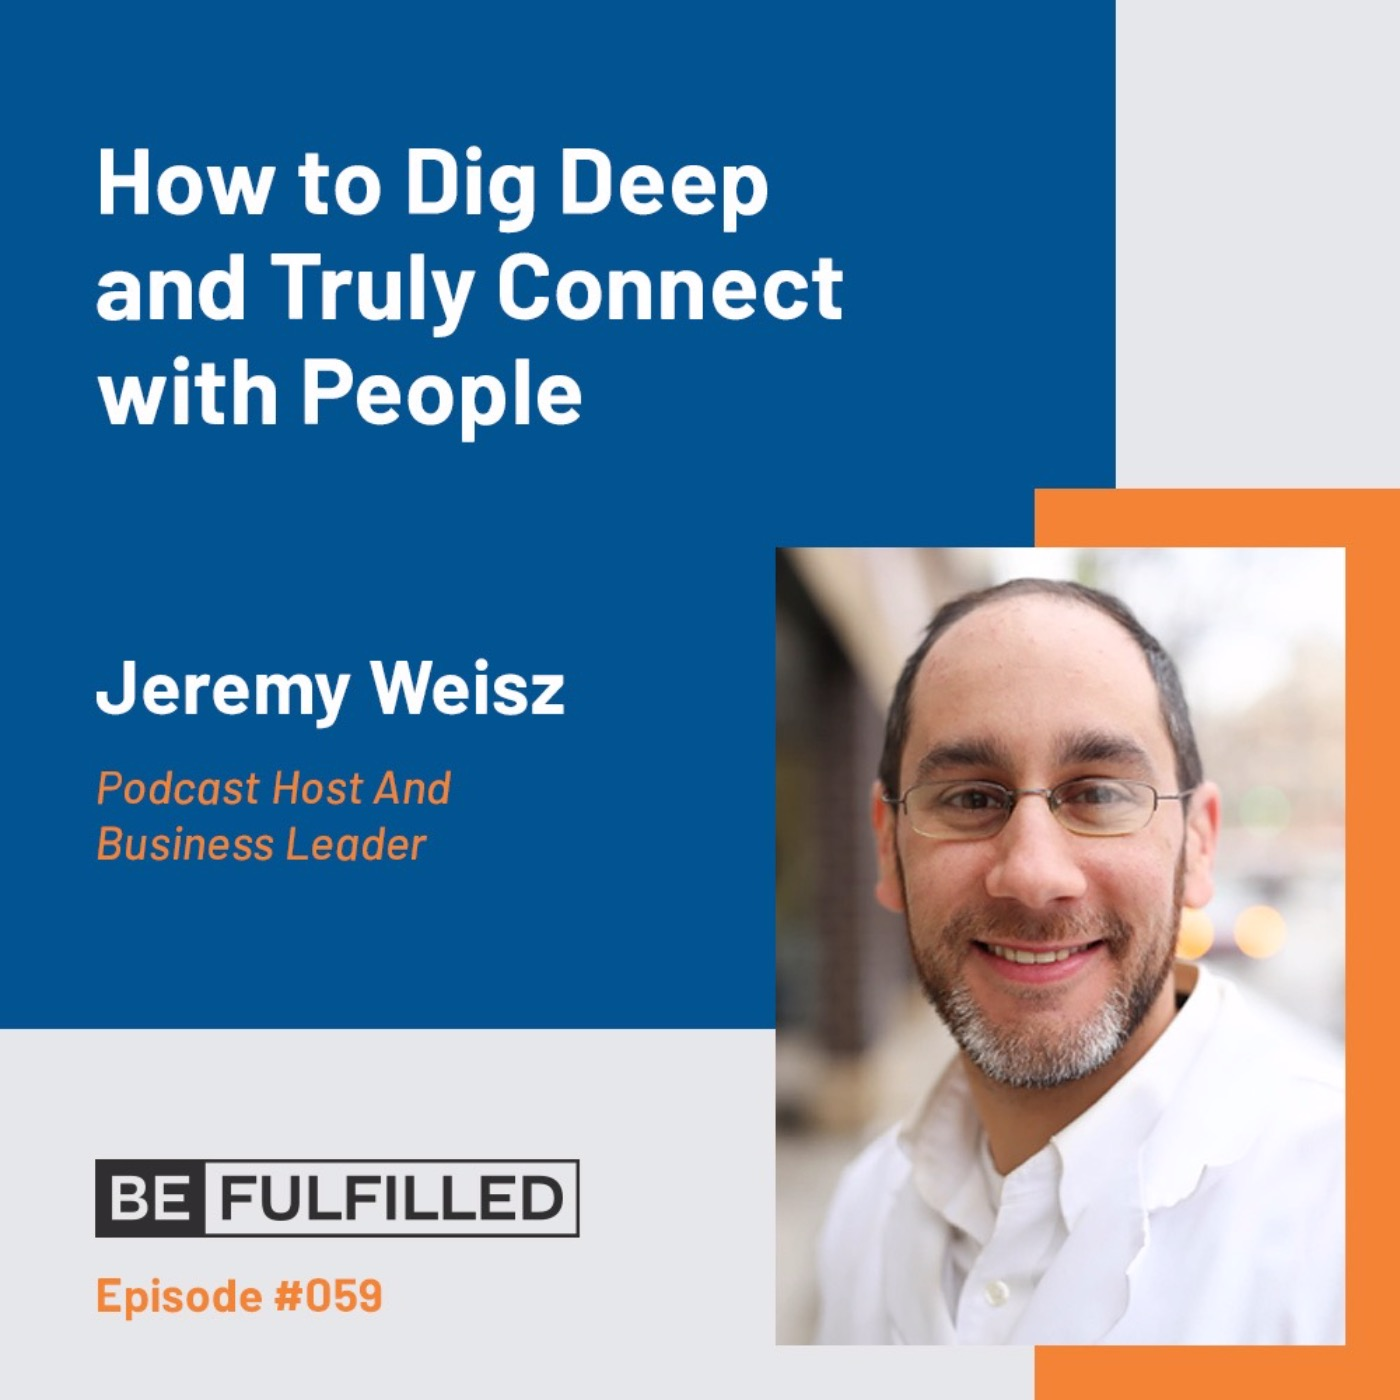 How to Dig Deep and Truly Connect with People - Jeremy Weisz